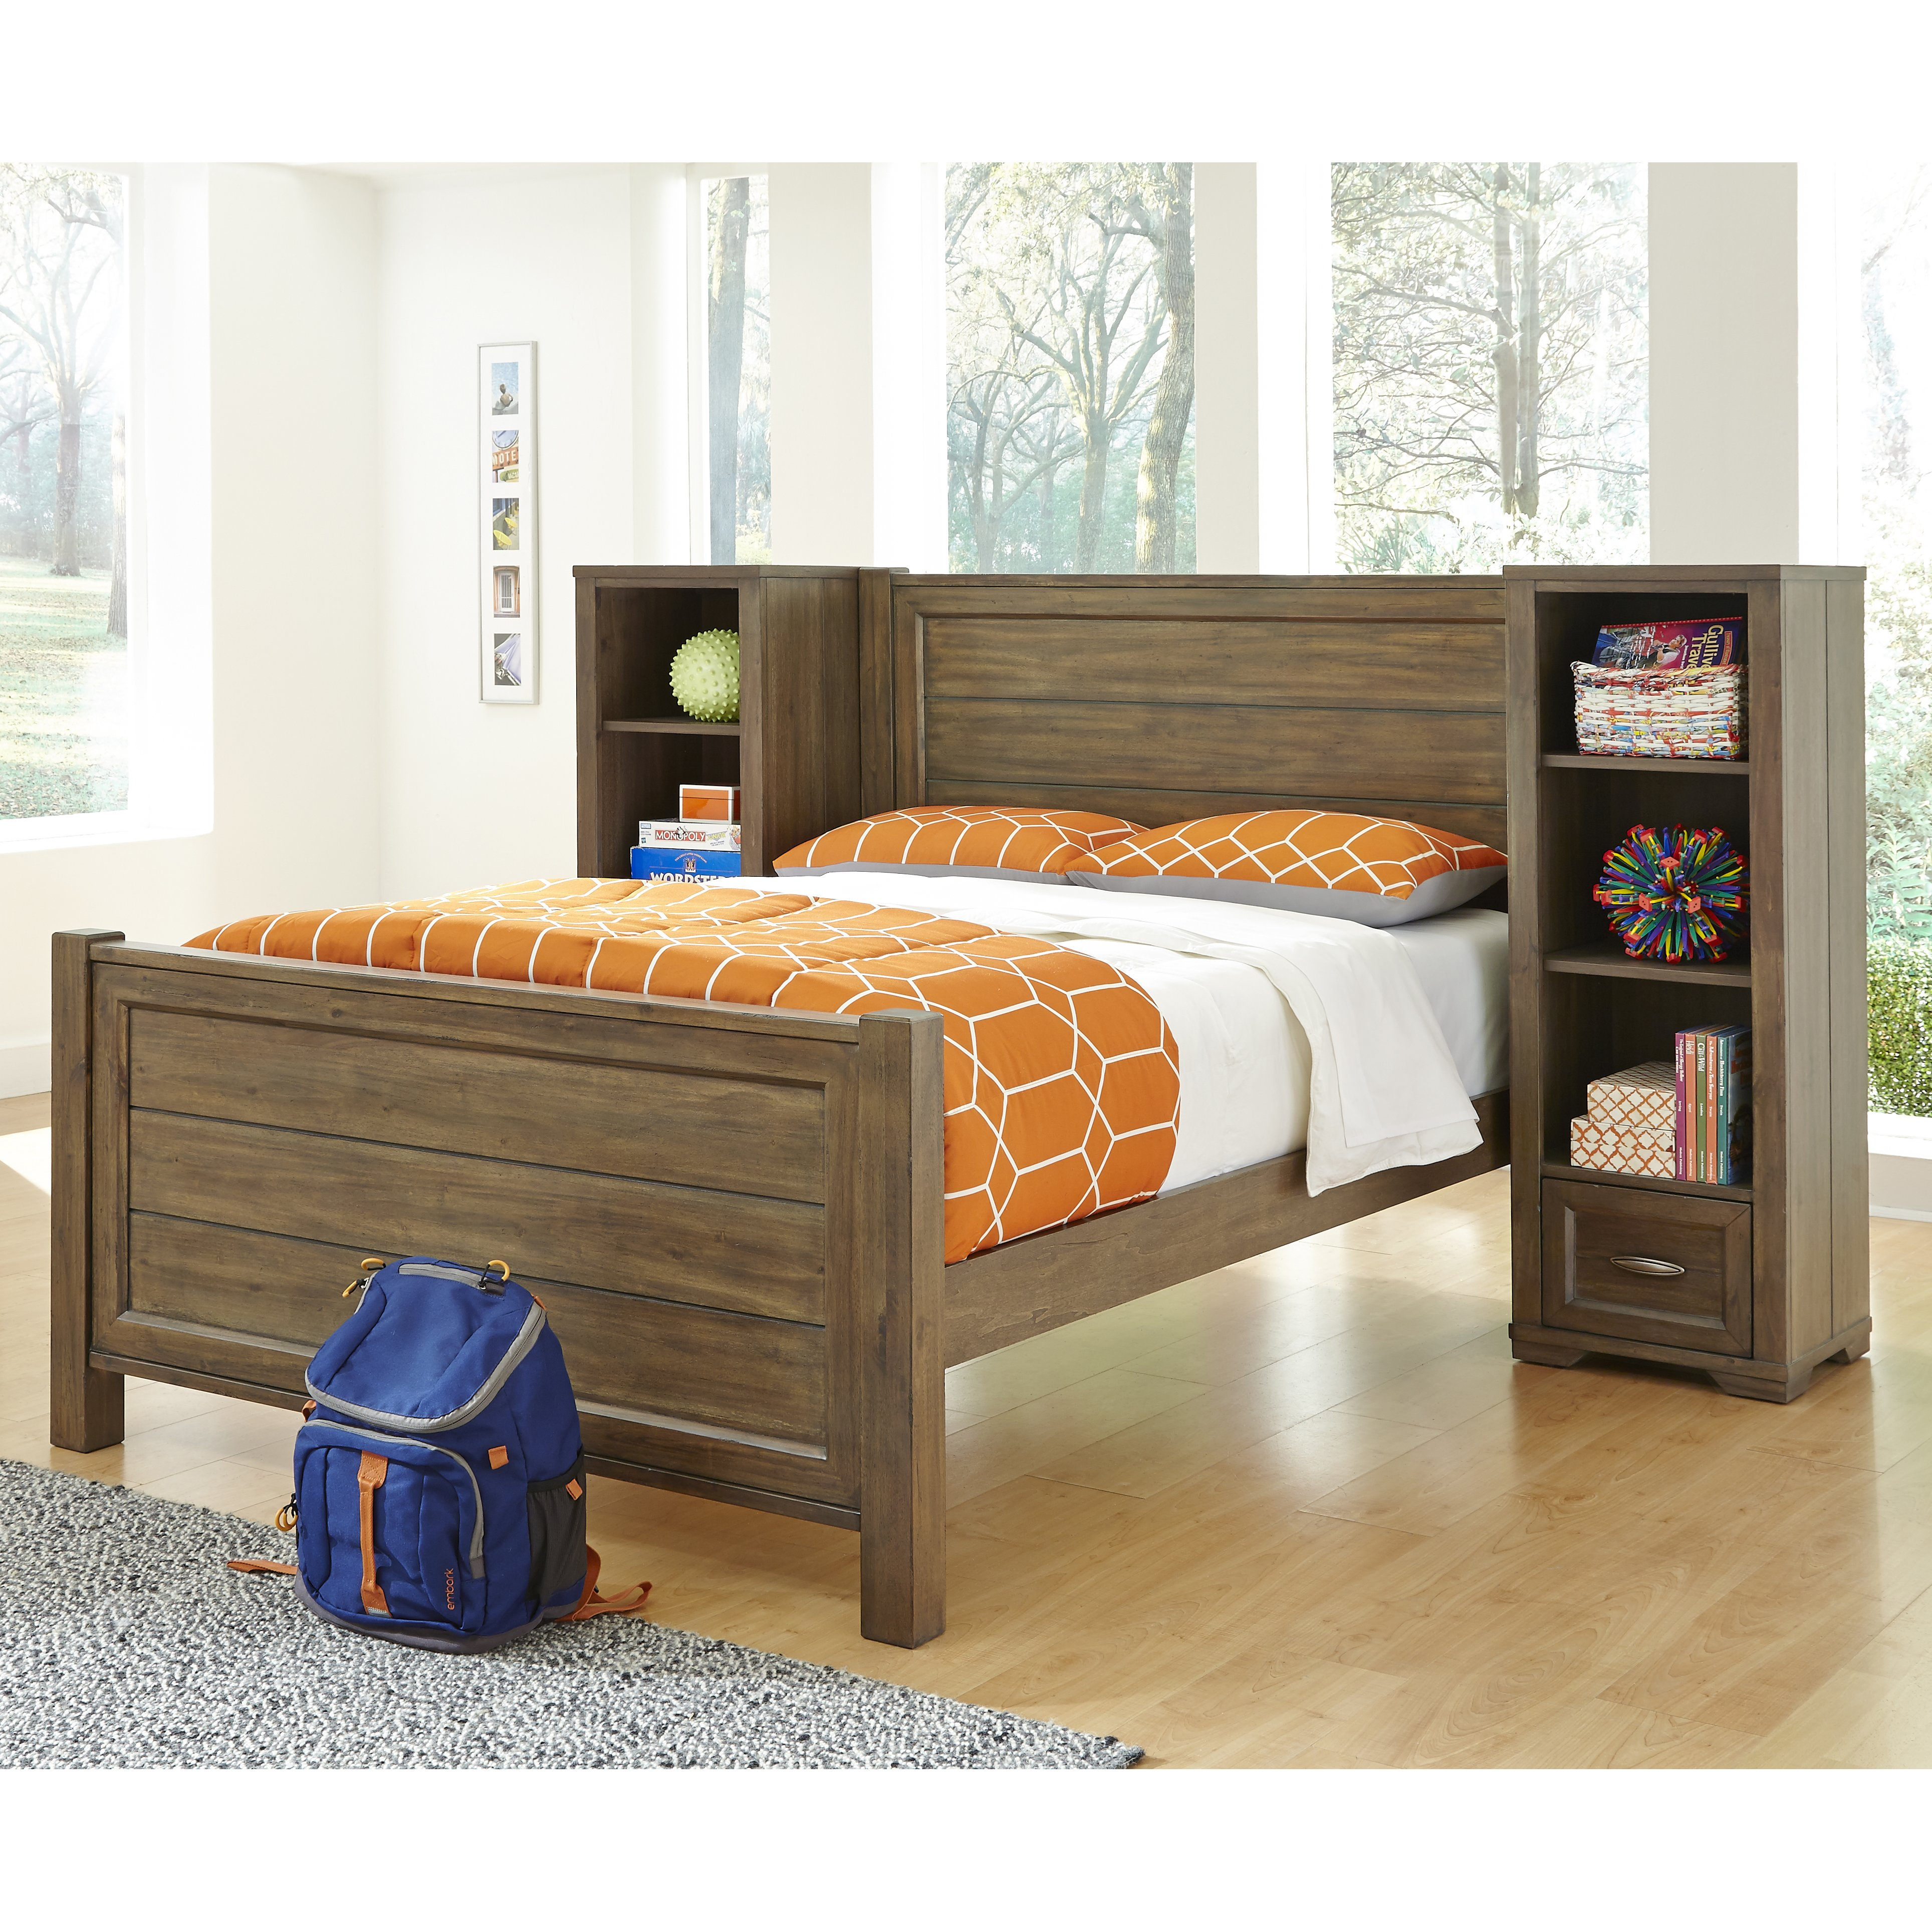 Image of: Driftwood Bedroom Furniture Uk